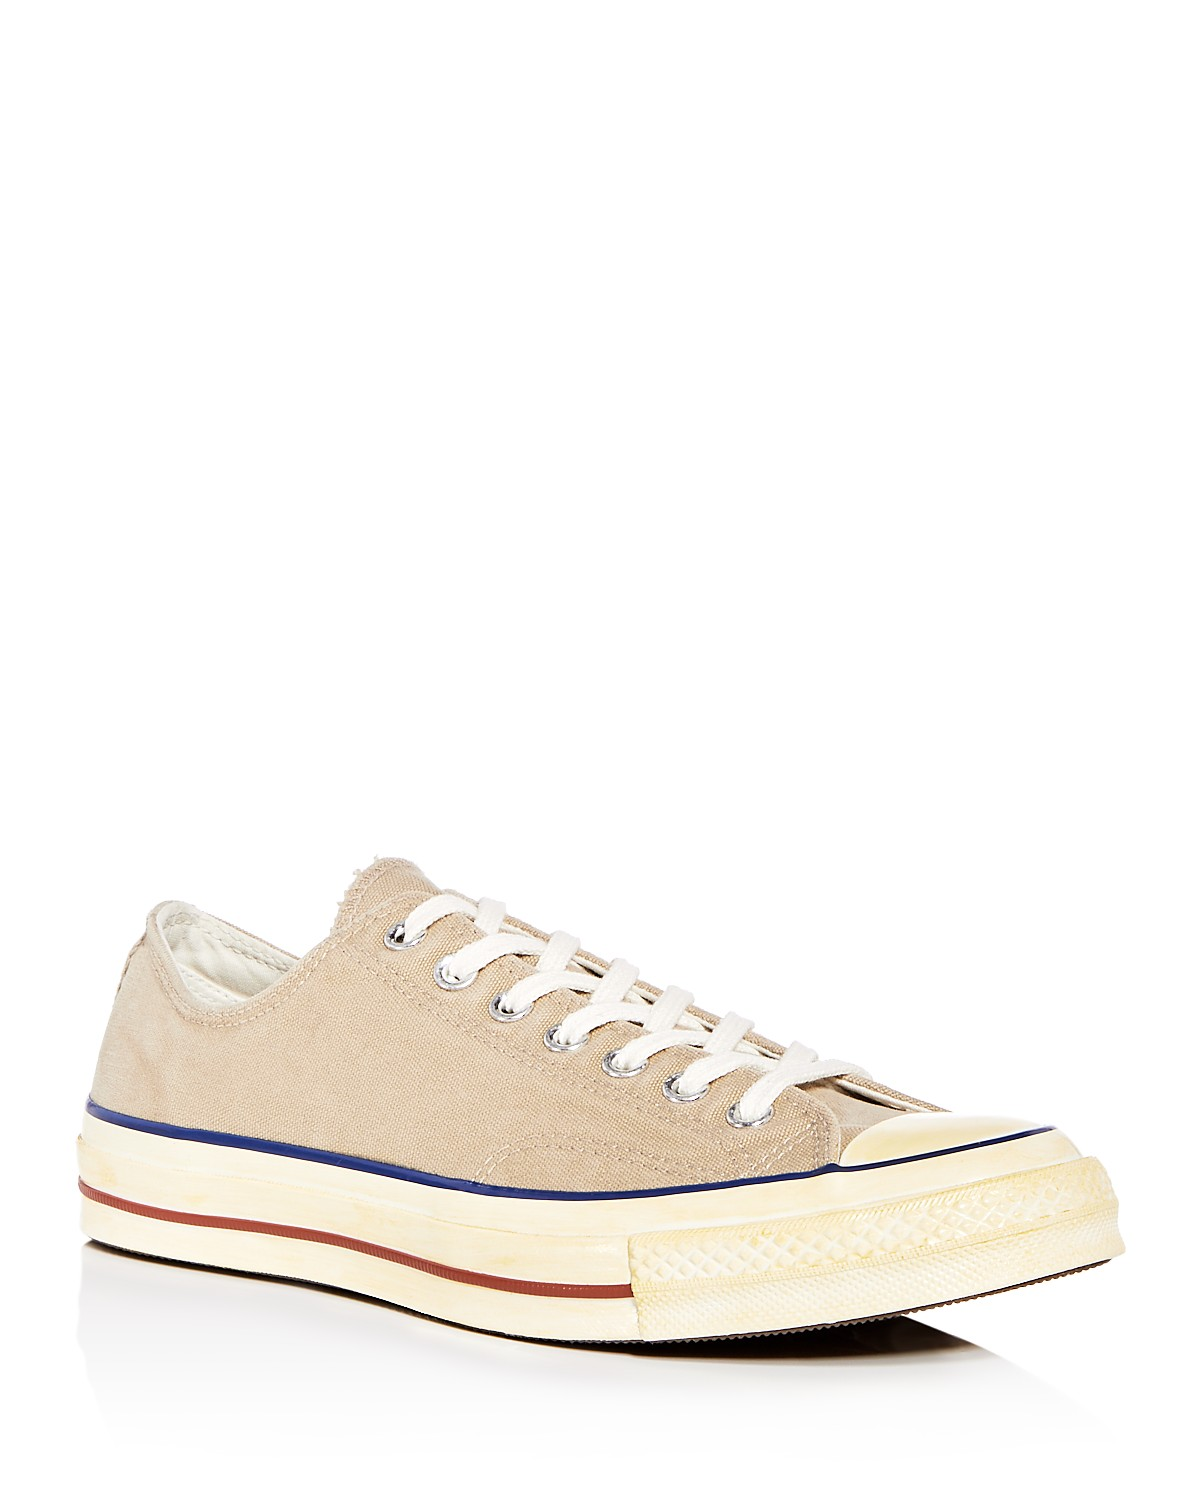 Converse Men's Chuck Taylor All Star '70 Lace Up Sneakers tDsPPD